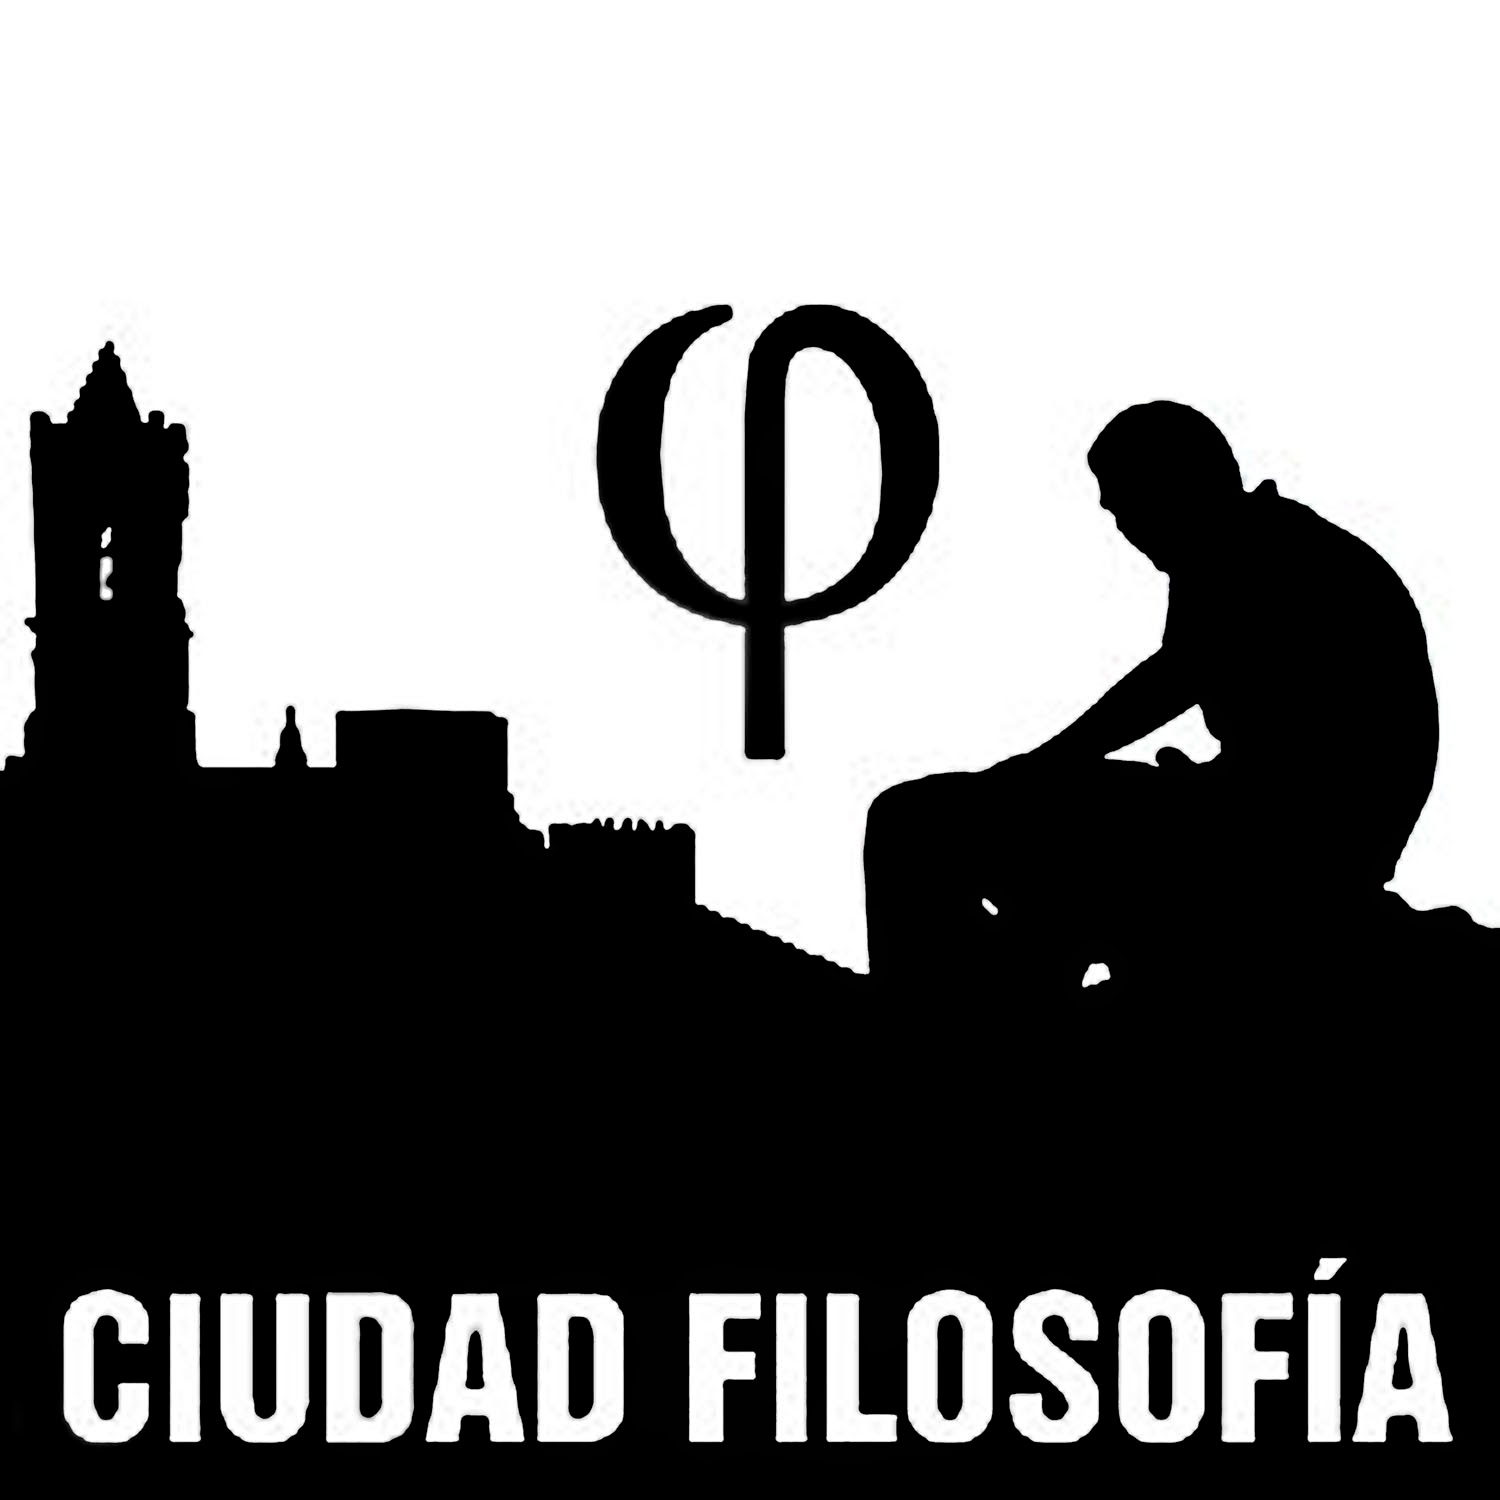 https://www.youtube.com/user/CiudadFilosofia